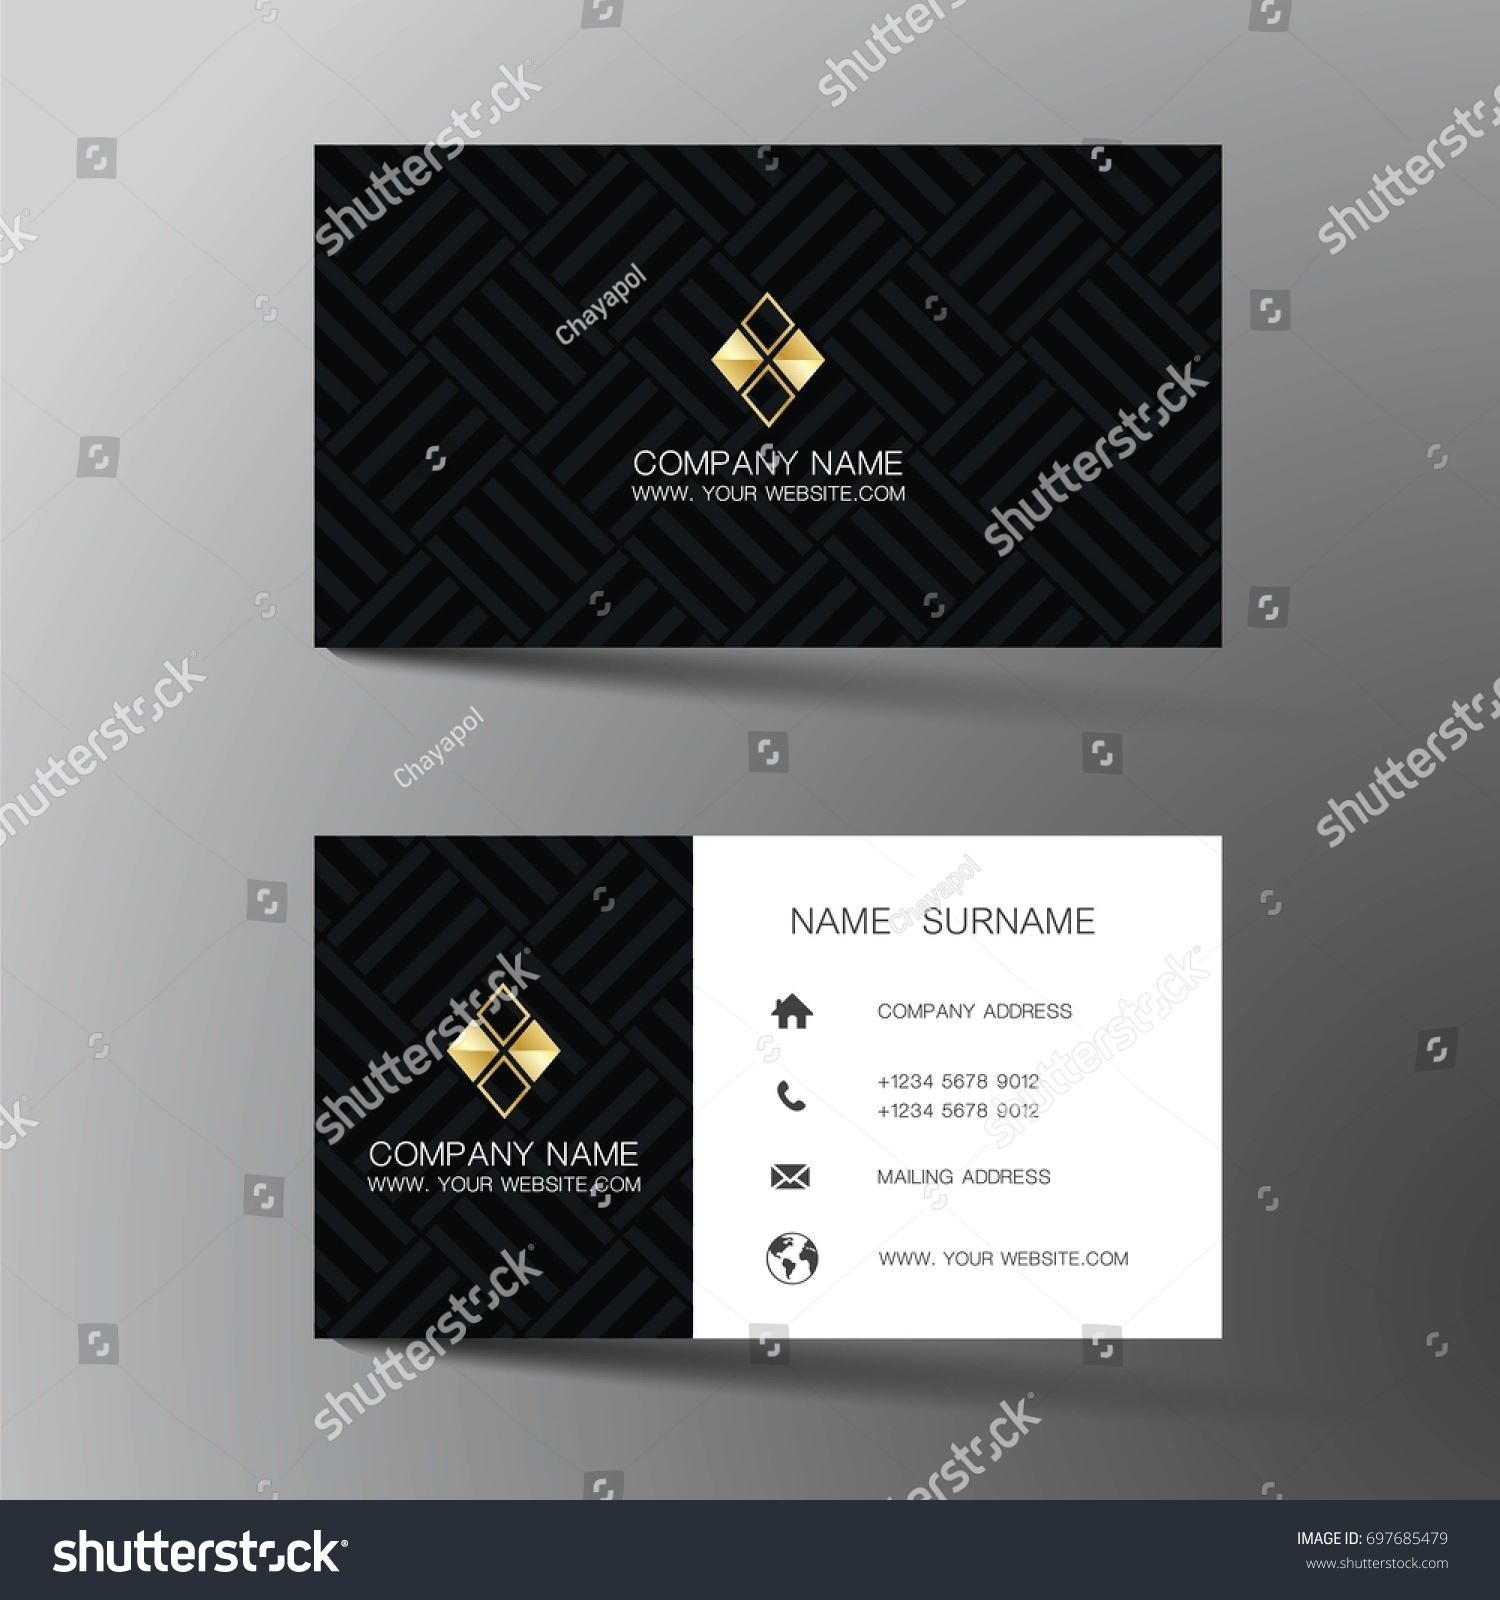 Modern business card design inspiration abstract stock vector modern business card design with inspiration from the abstract reheart Choice Image